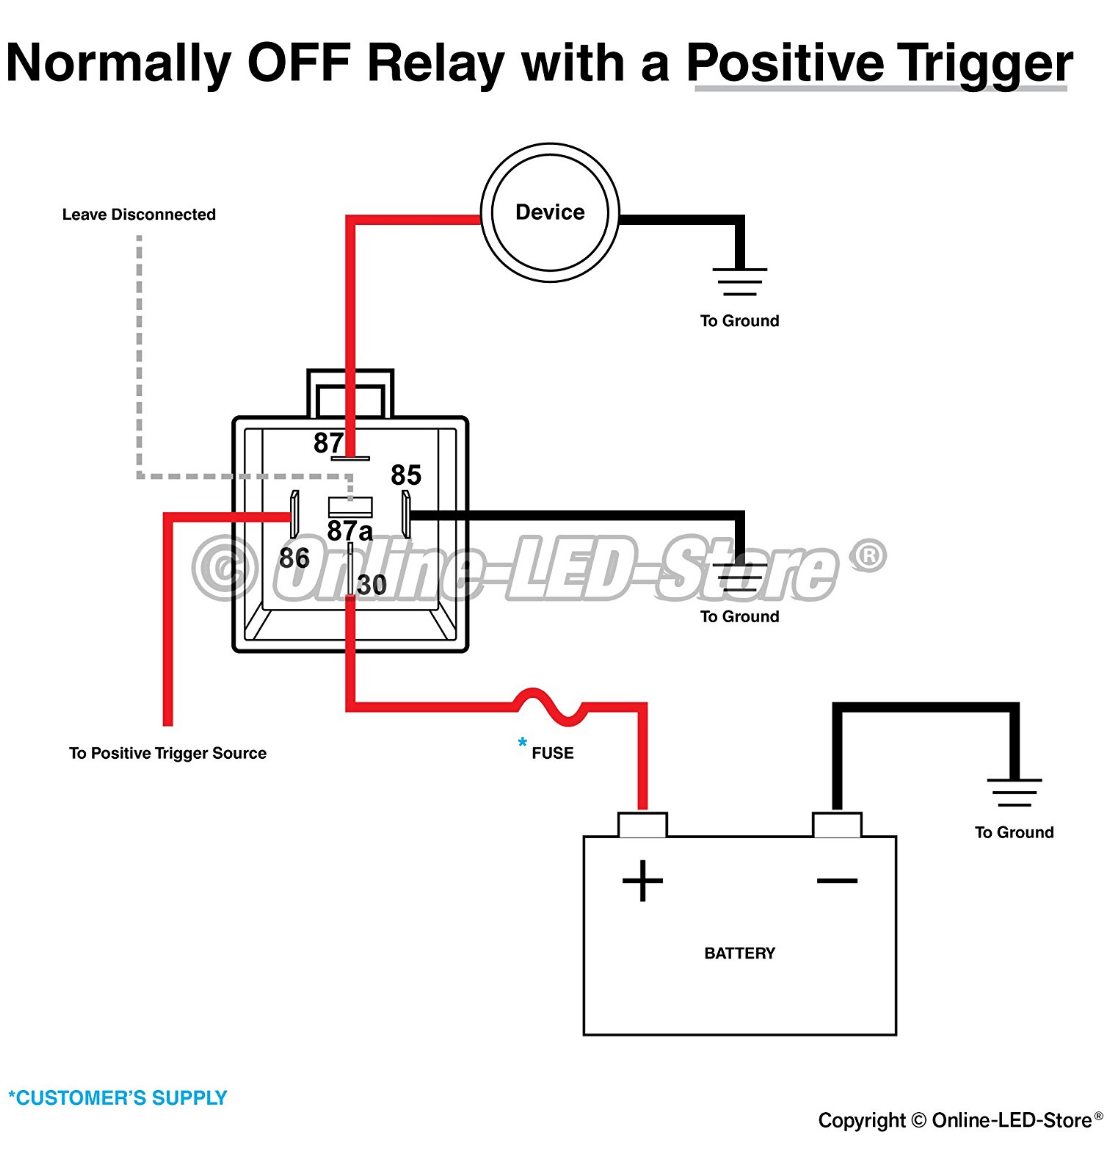 Circuit Diagram Positive Negative. how to create positive